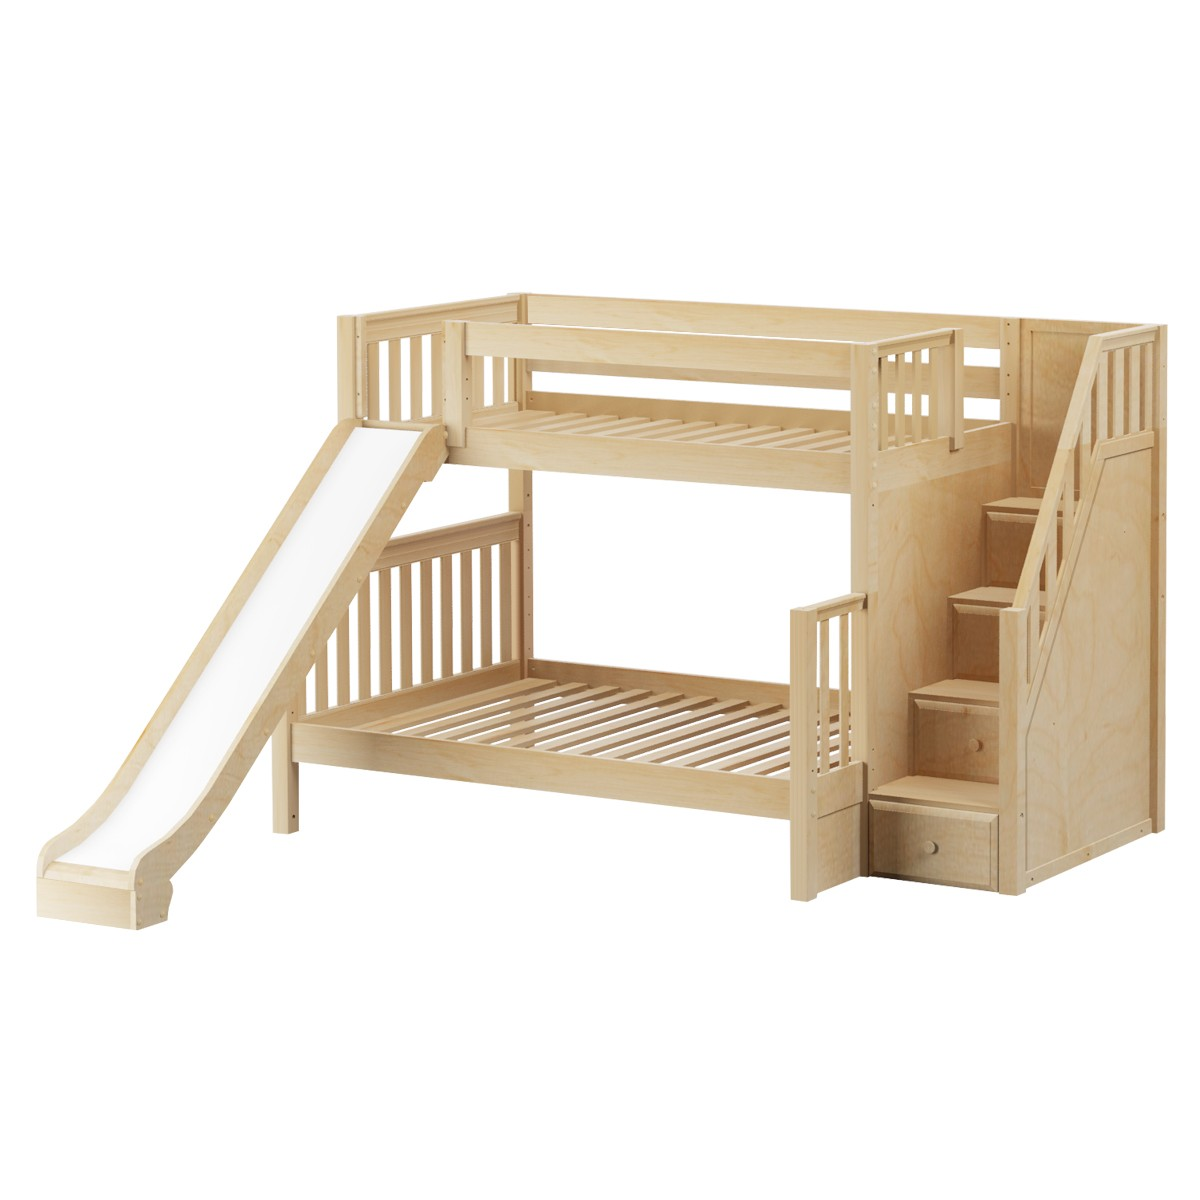 Foxtrot Med Tof Bunk Bed By Maxtrix Kids Natural Slats Stairs Slide